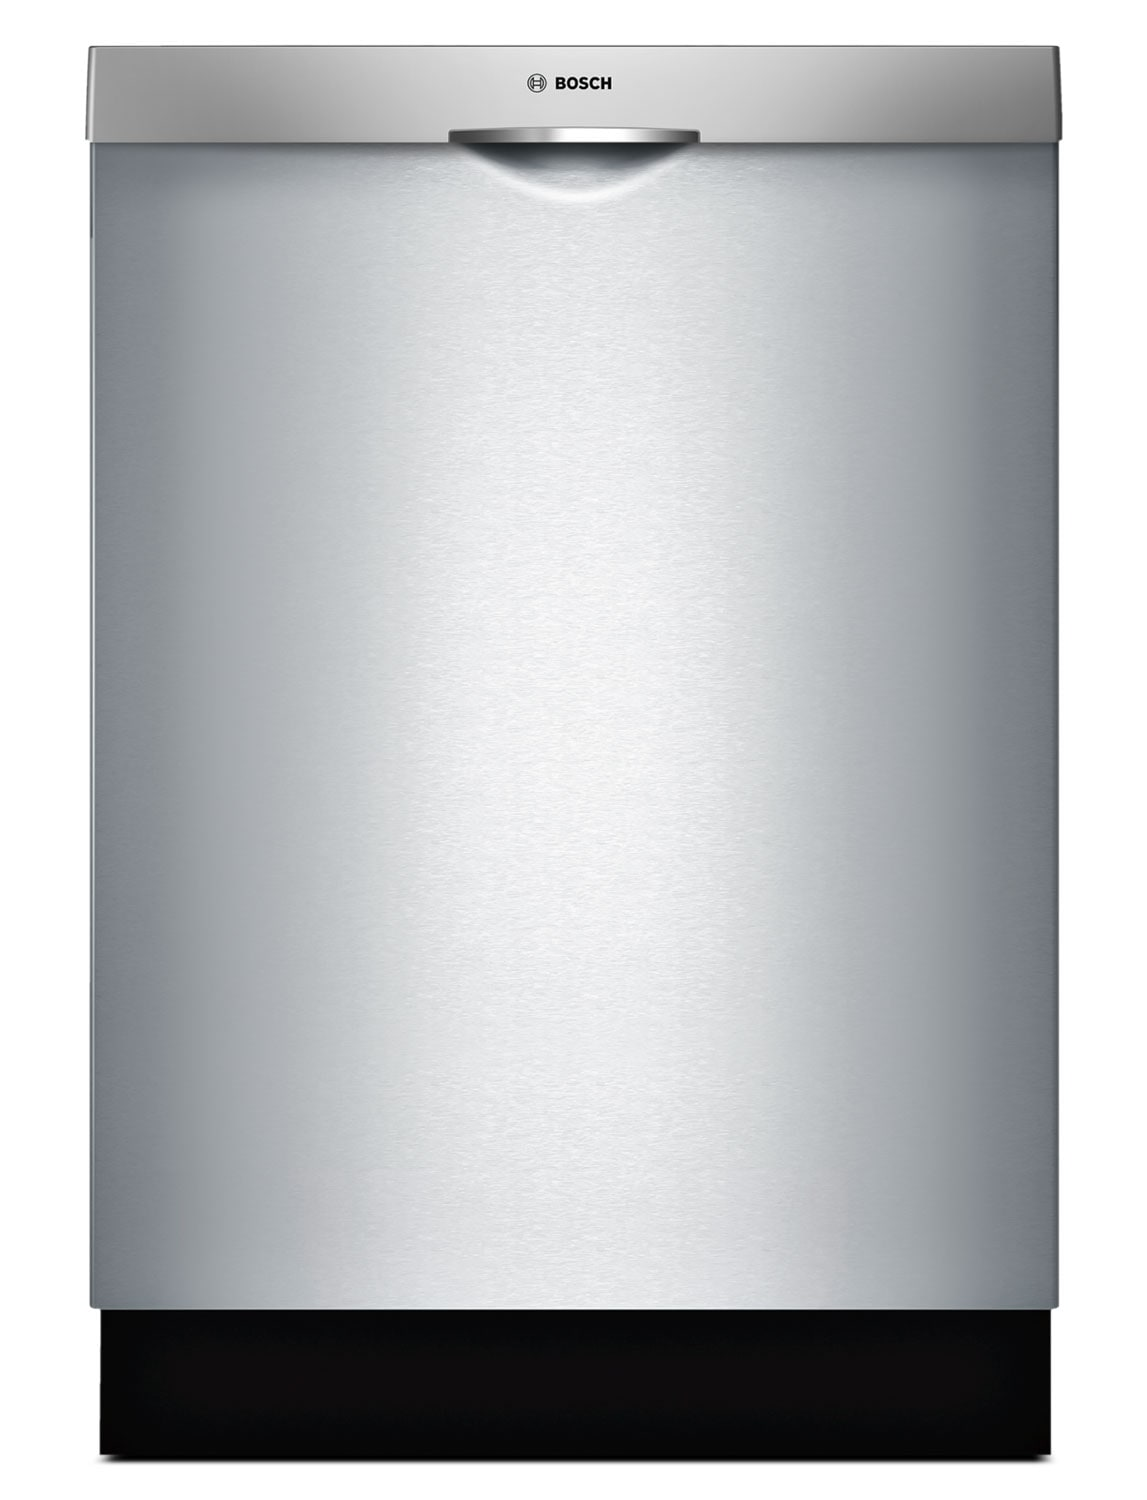 "Clean-Up - Bosch Stainless Steel 24"" Dishwasher - SHS5AV55UC"